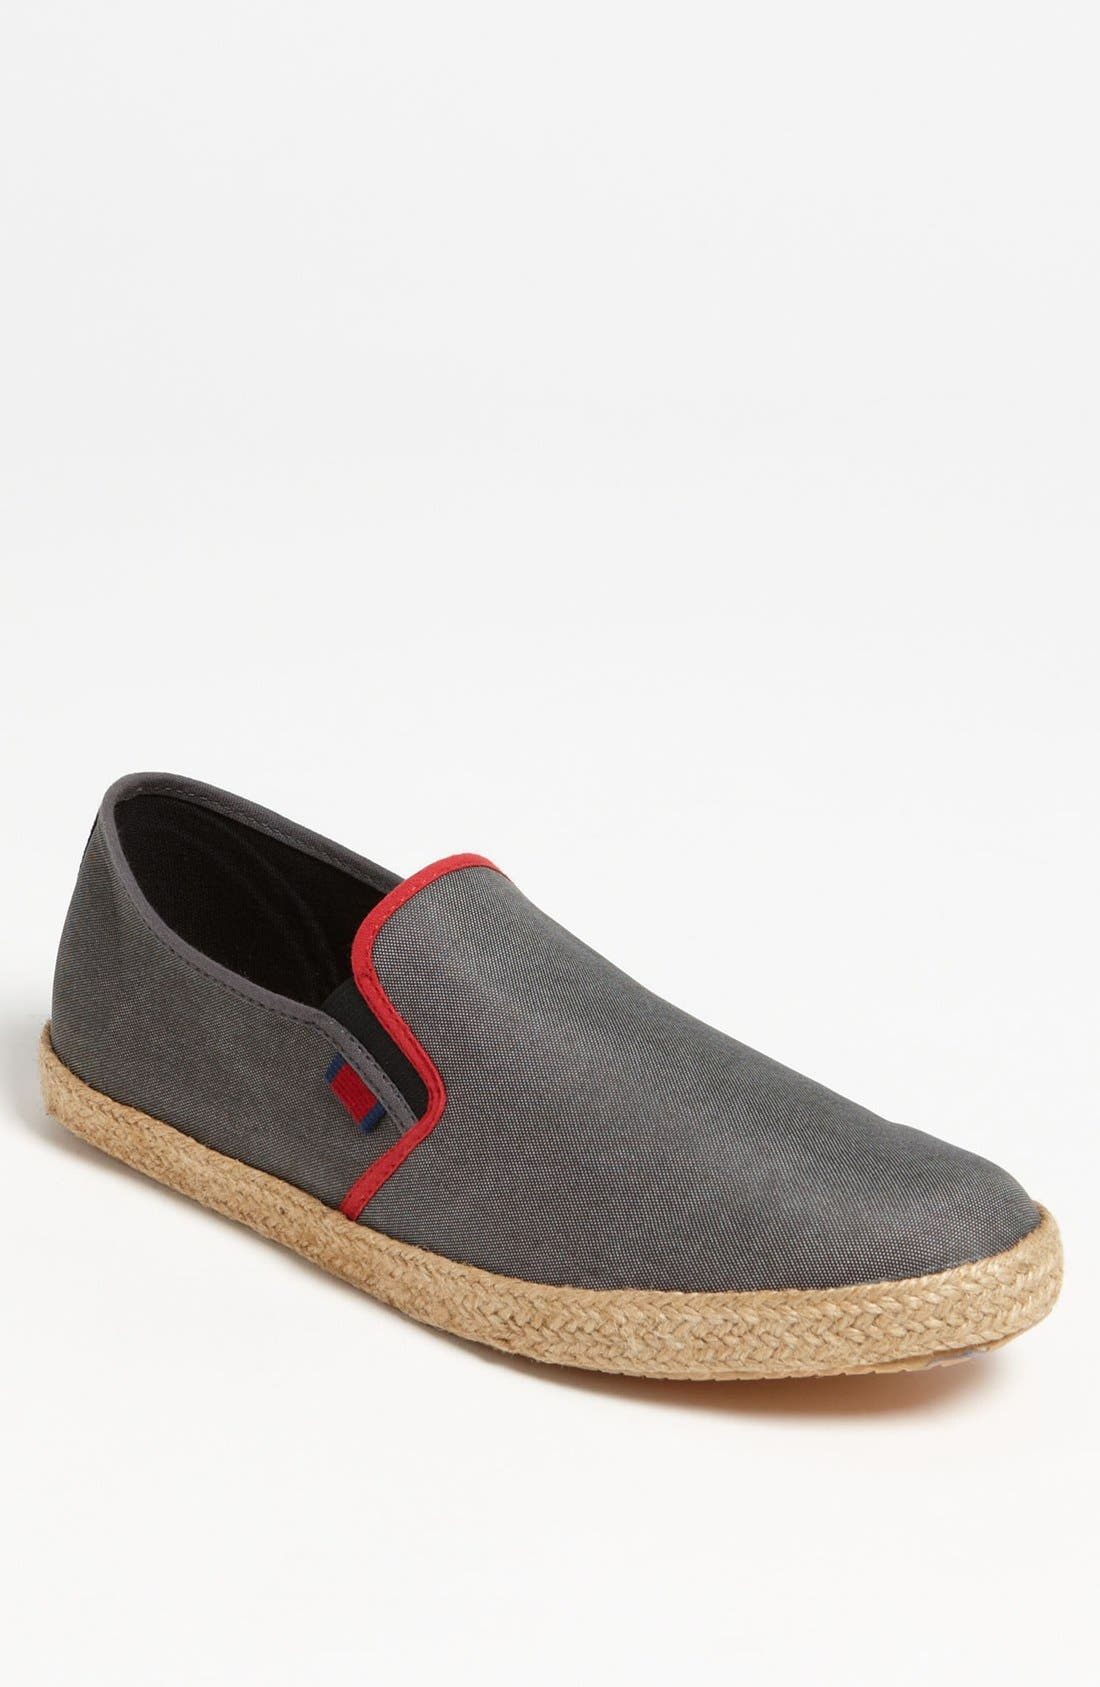 Alternate Image 1 Selected - Ben Sherman 'Pril' Slip-On